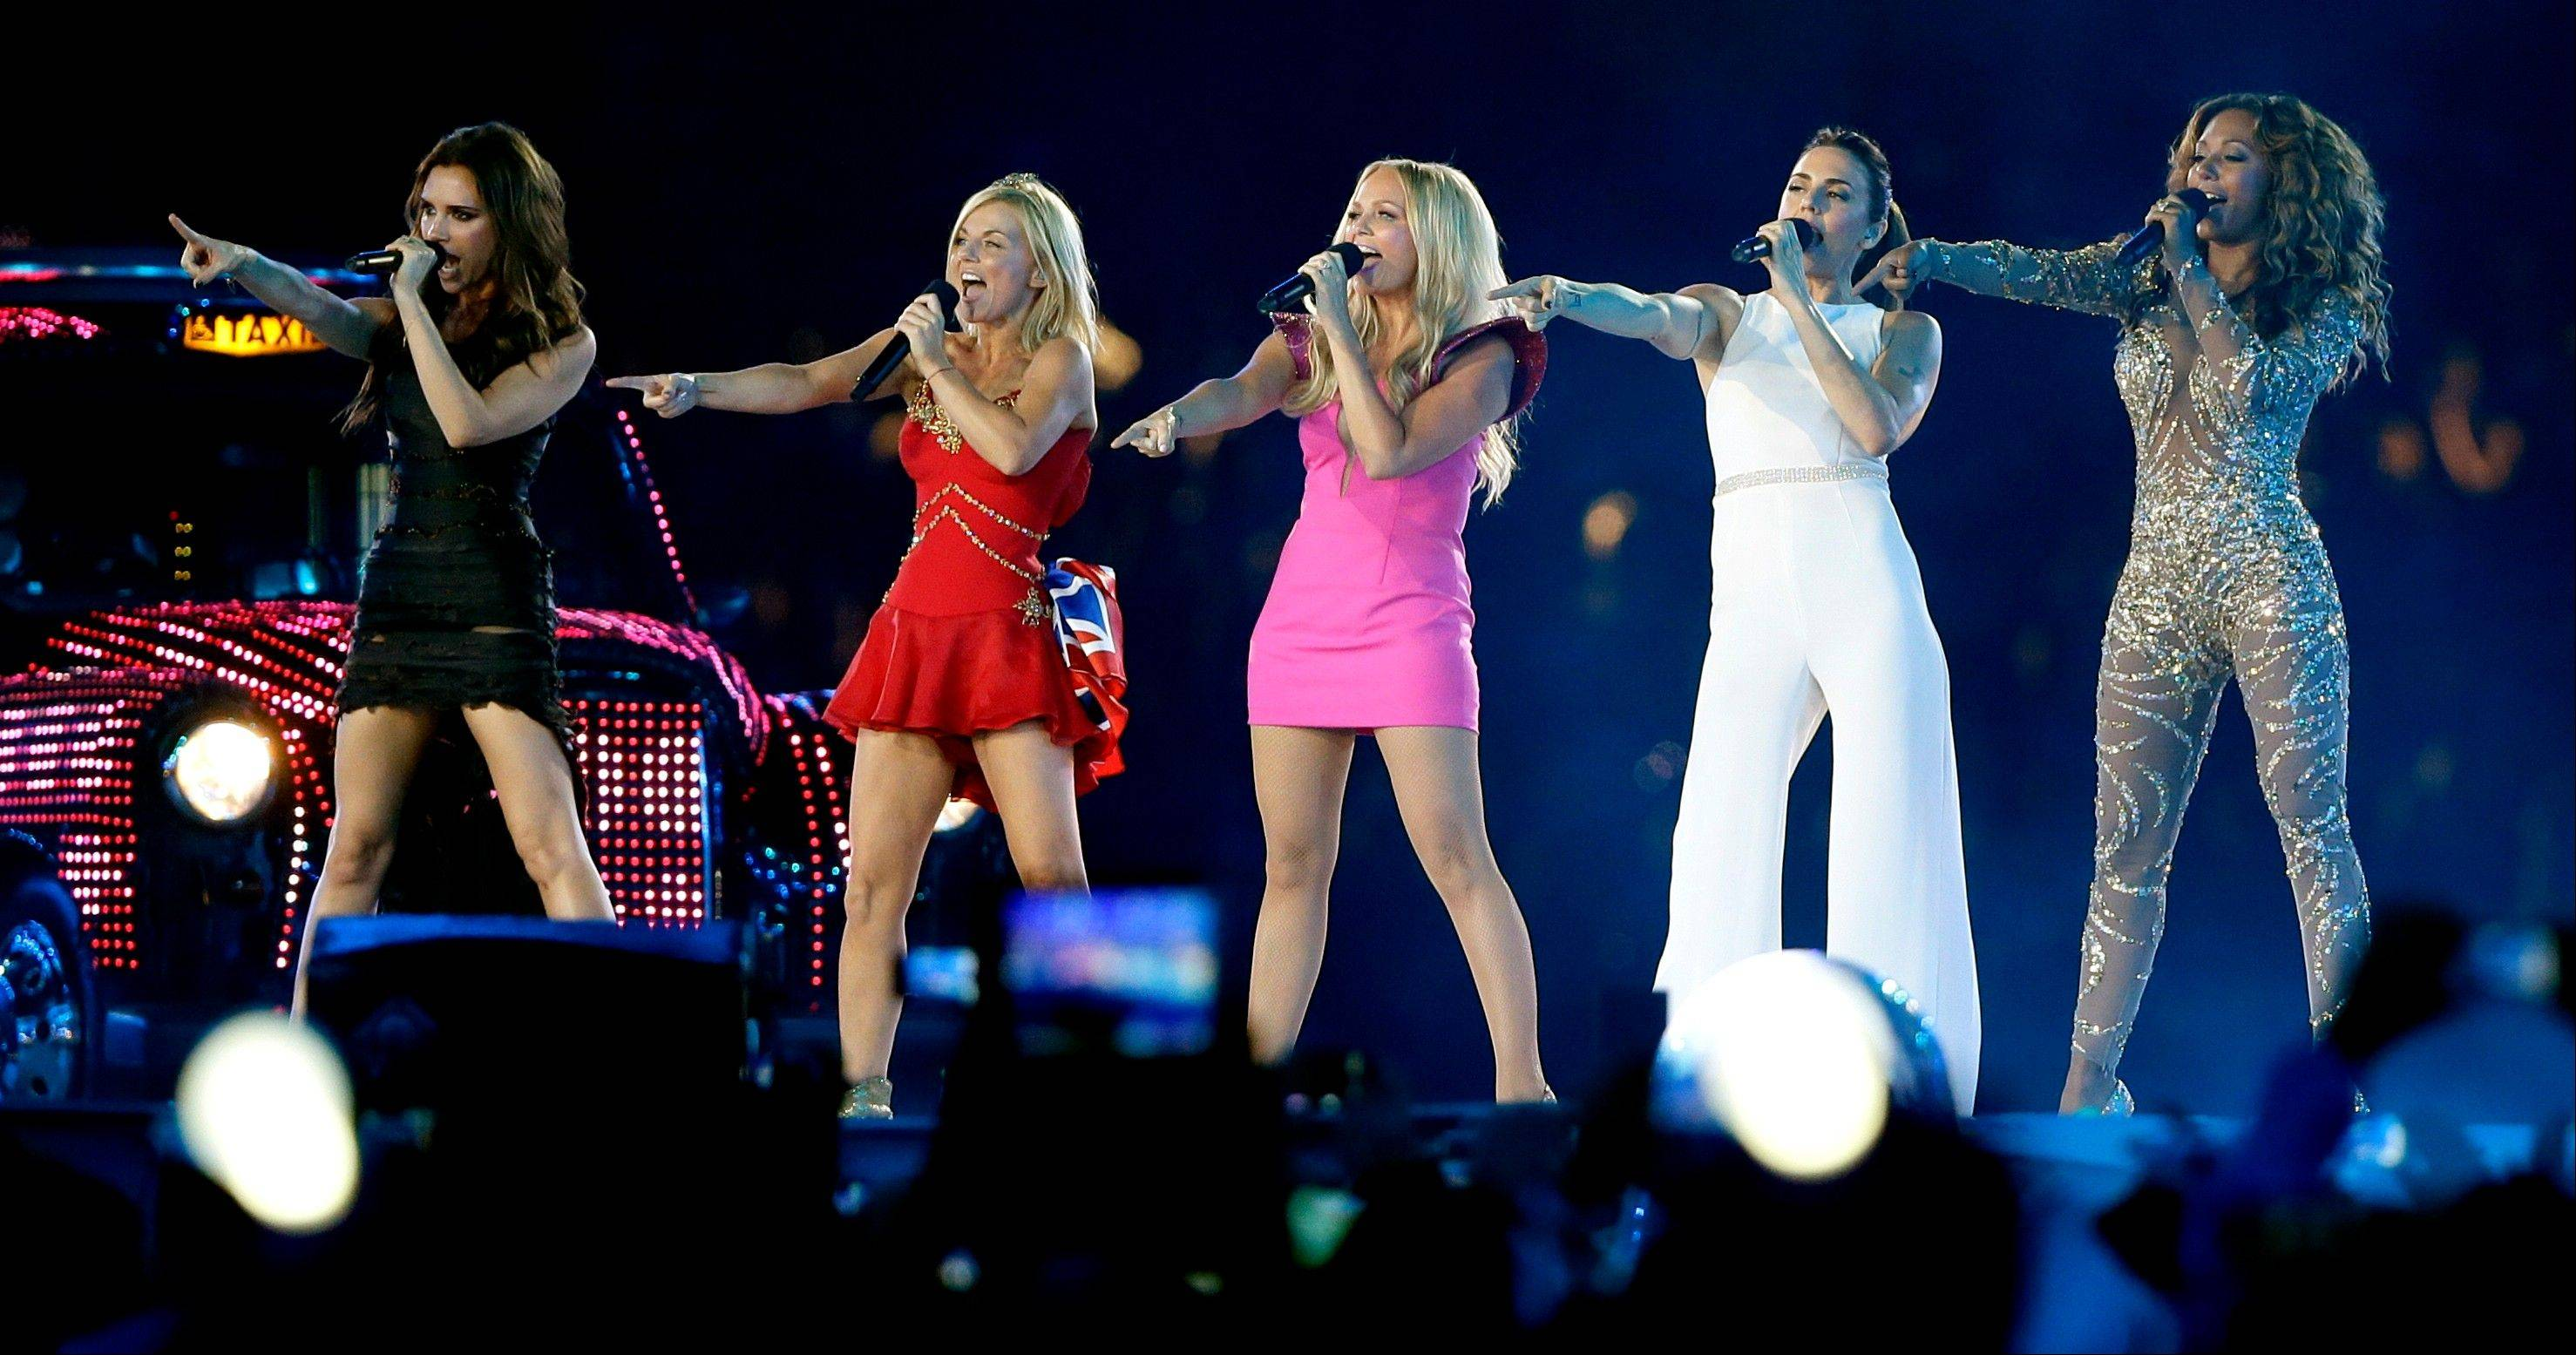 The Spice Girls perform during the Closing Ceremony at the 2012 Summer Olympics.